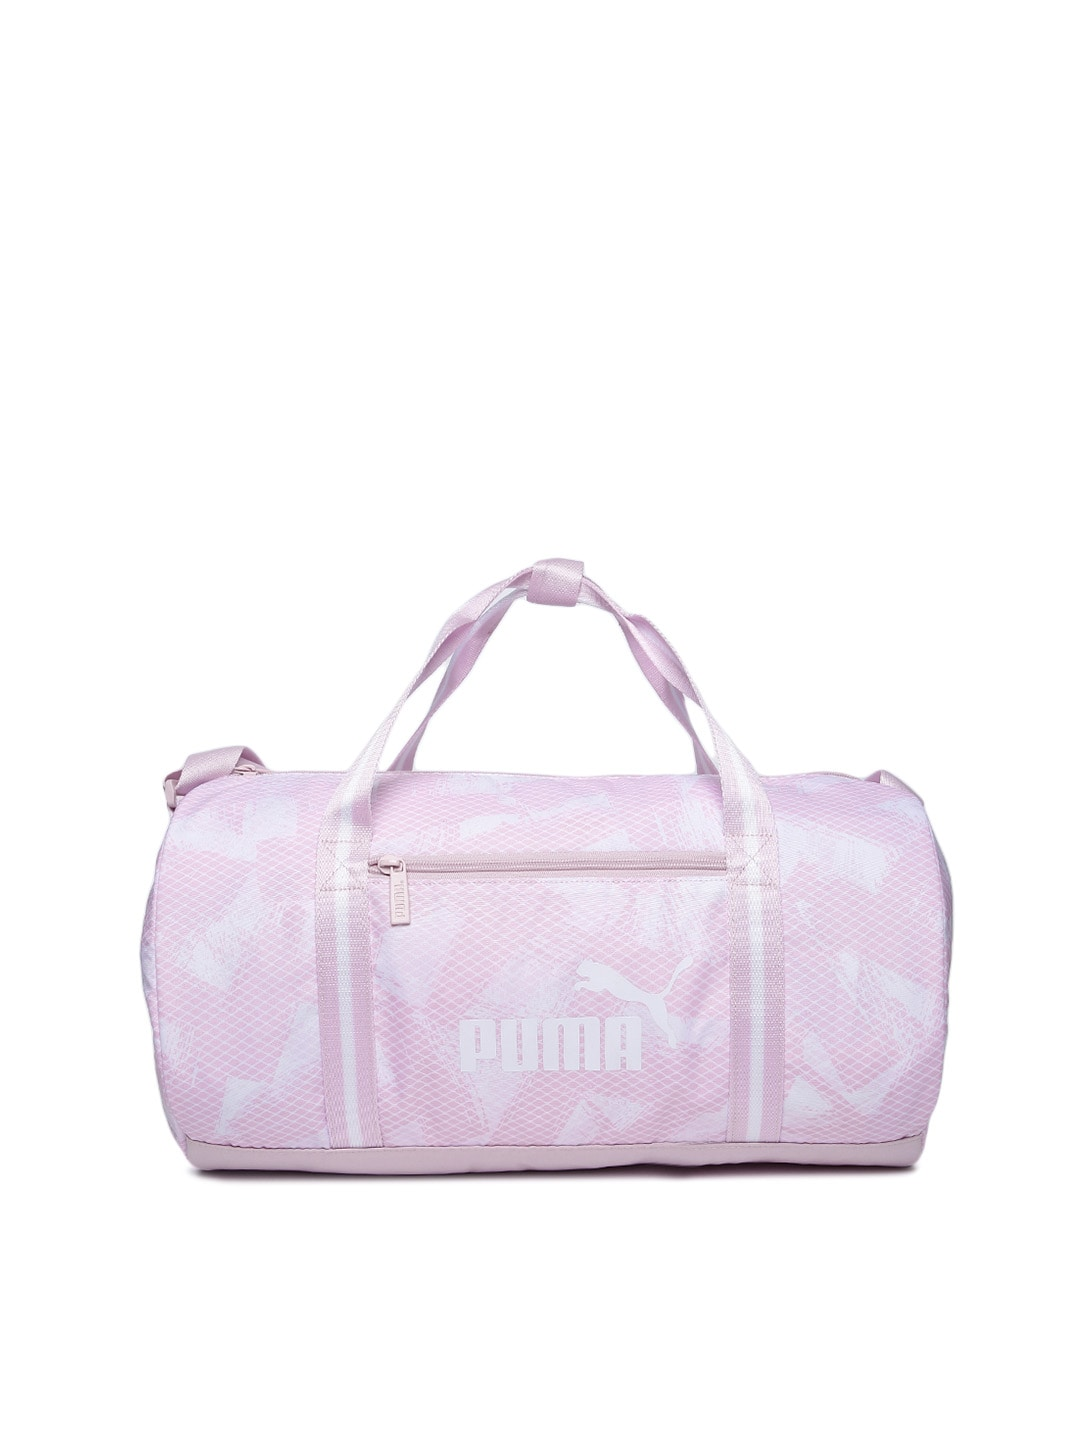 a28c471859a6 Pink Bags